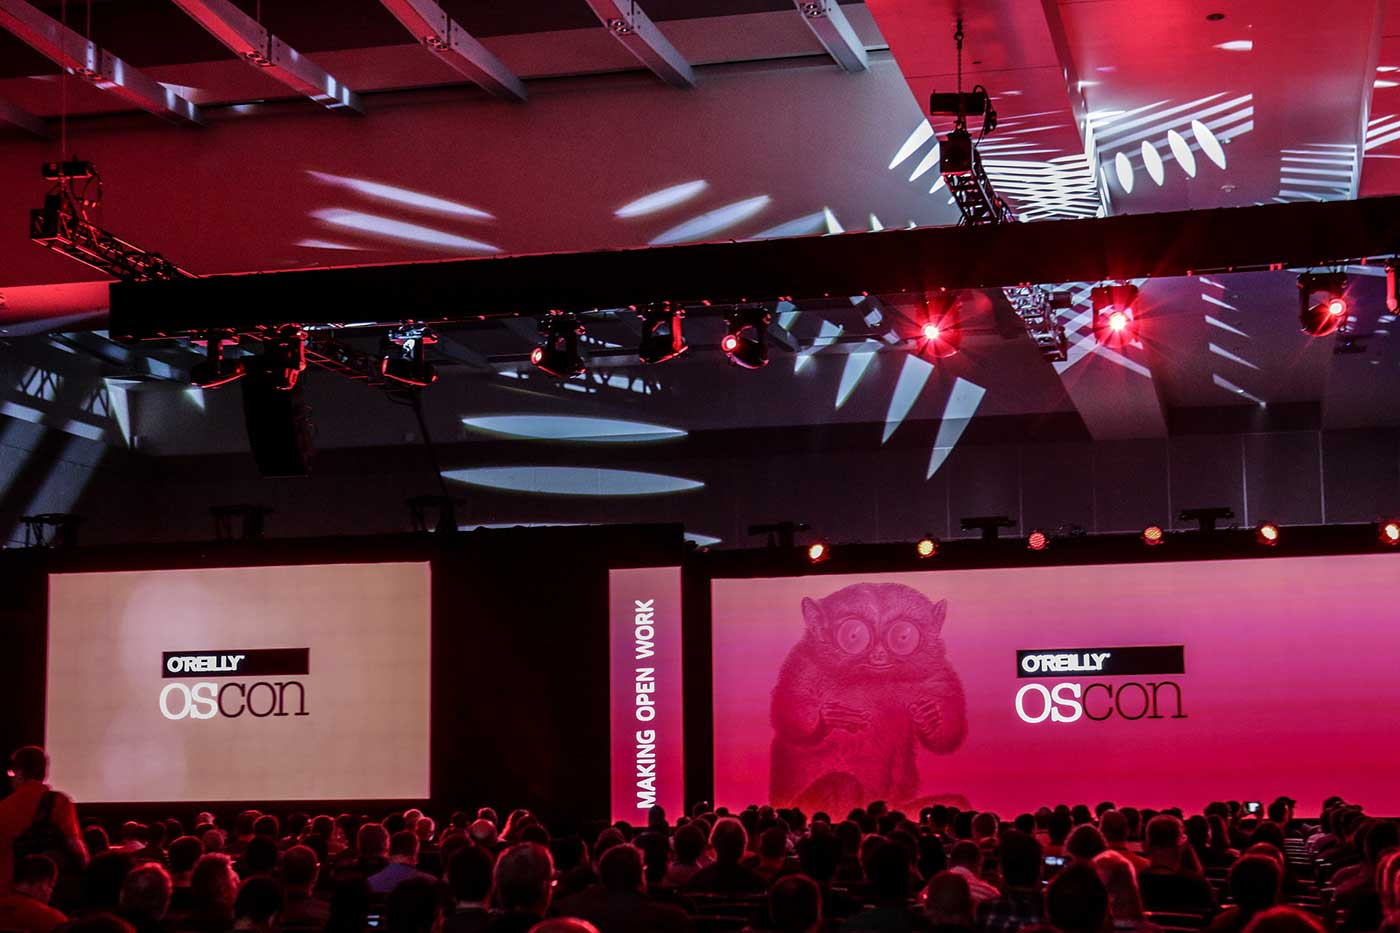 The stage at the O'Reilly OSCON Conference in Austin